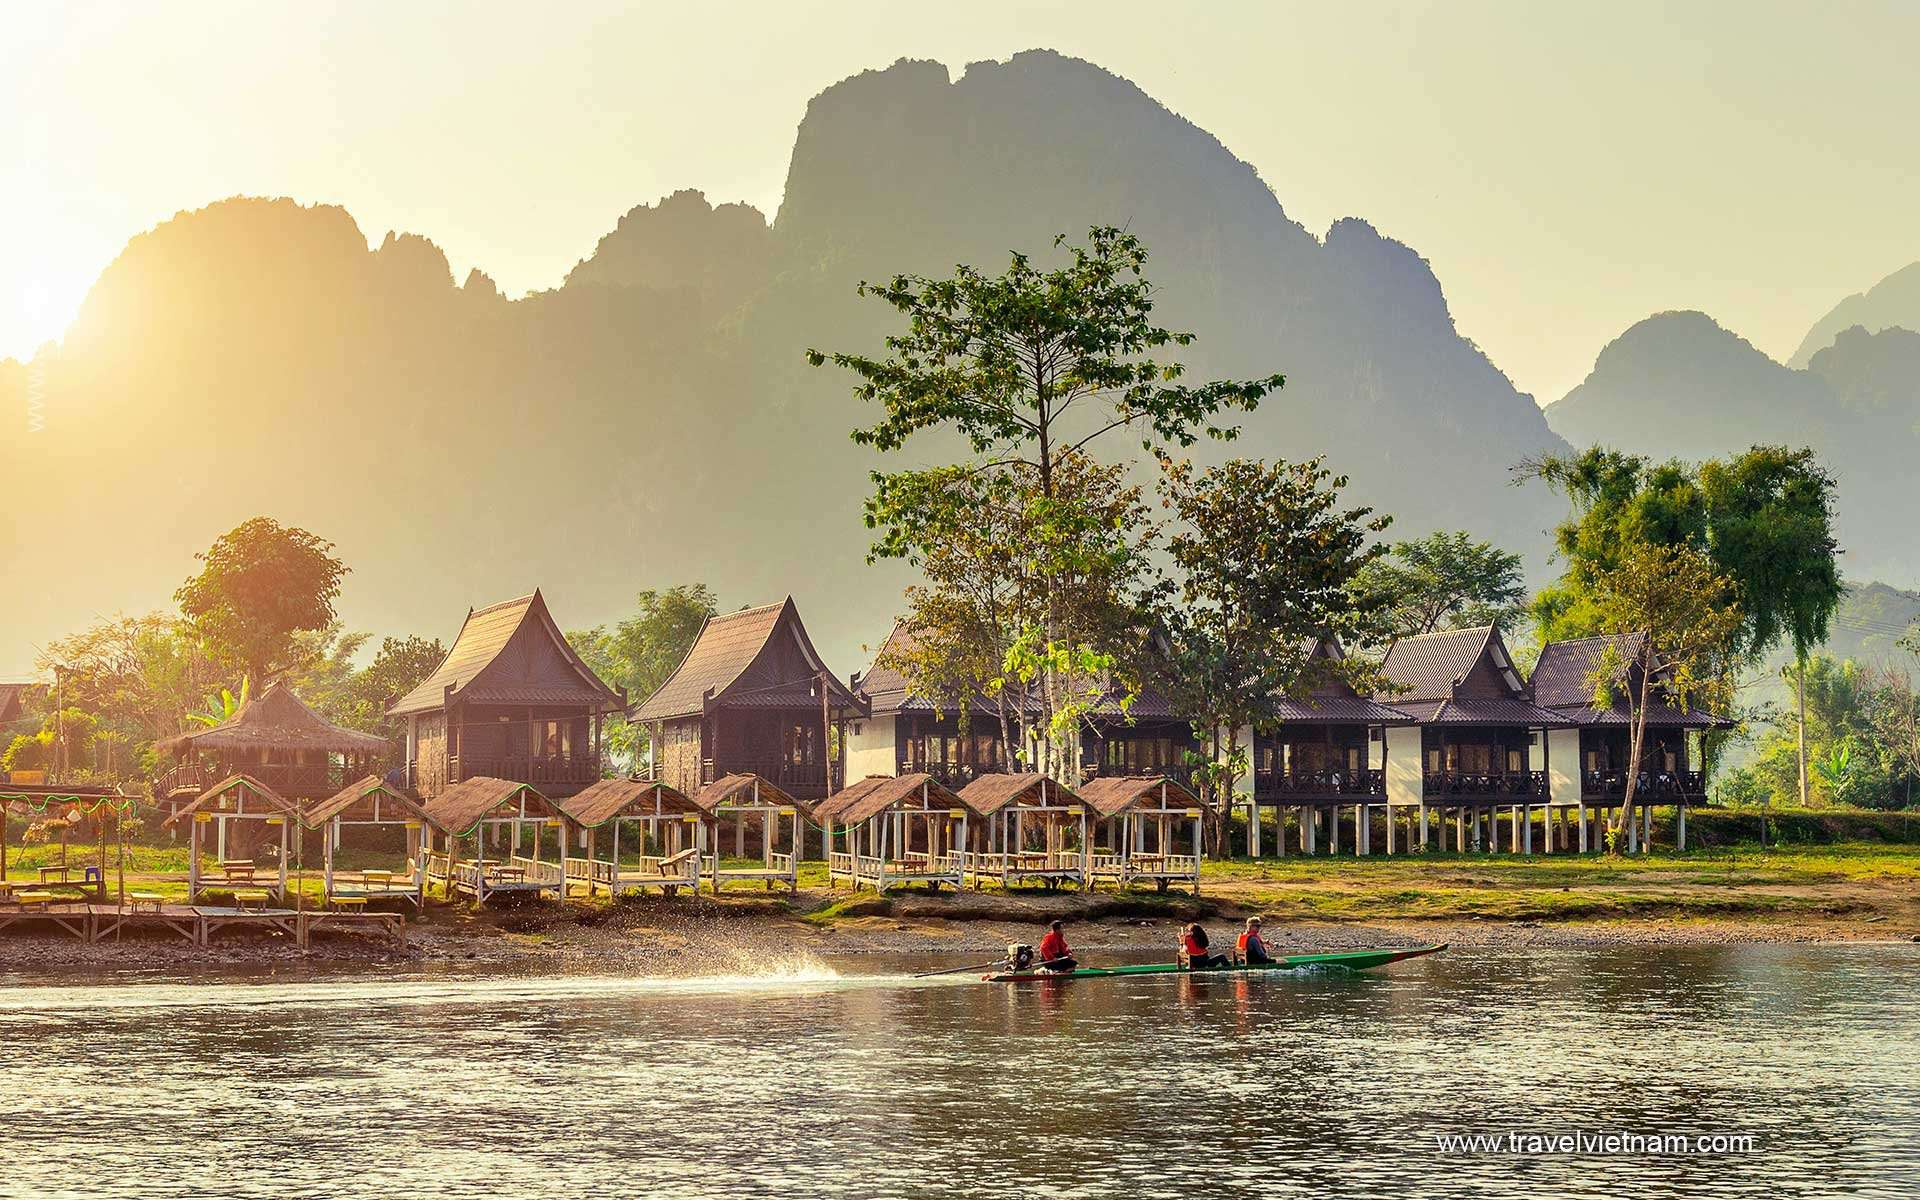 North Vietnam & Laos Adventure - 13 Days